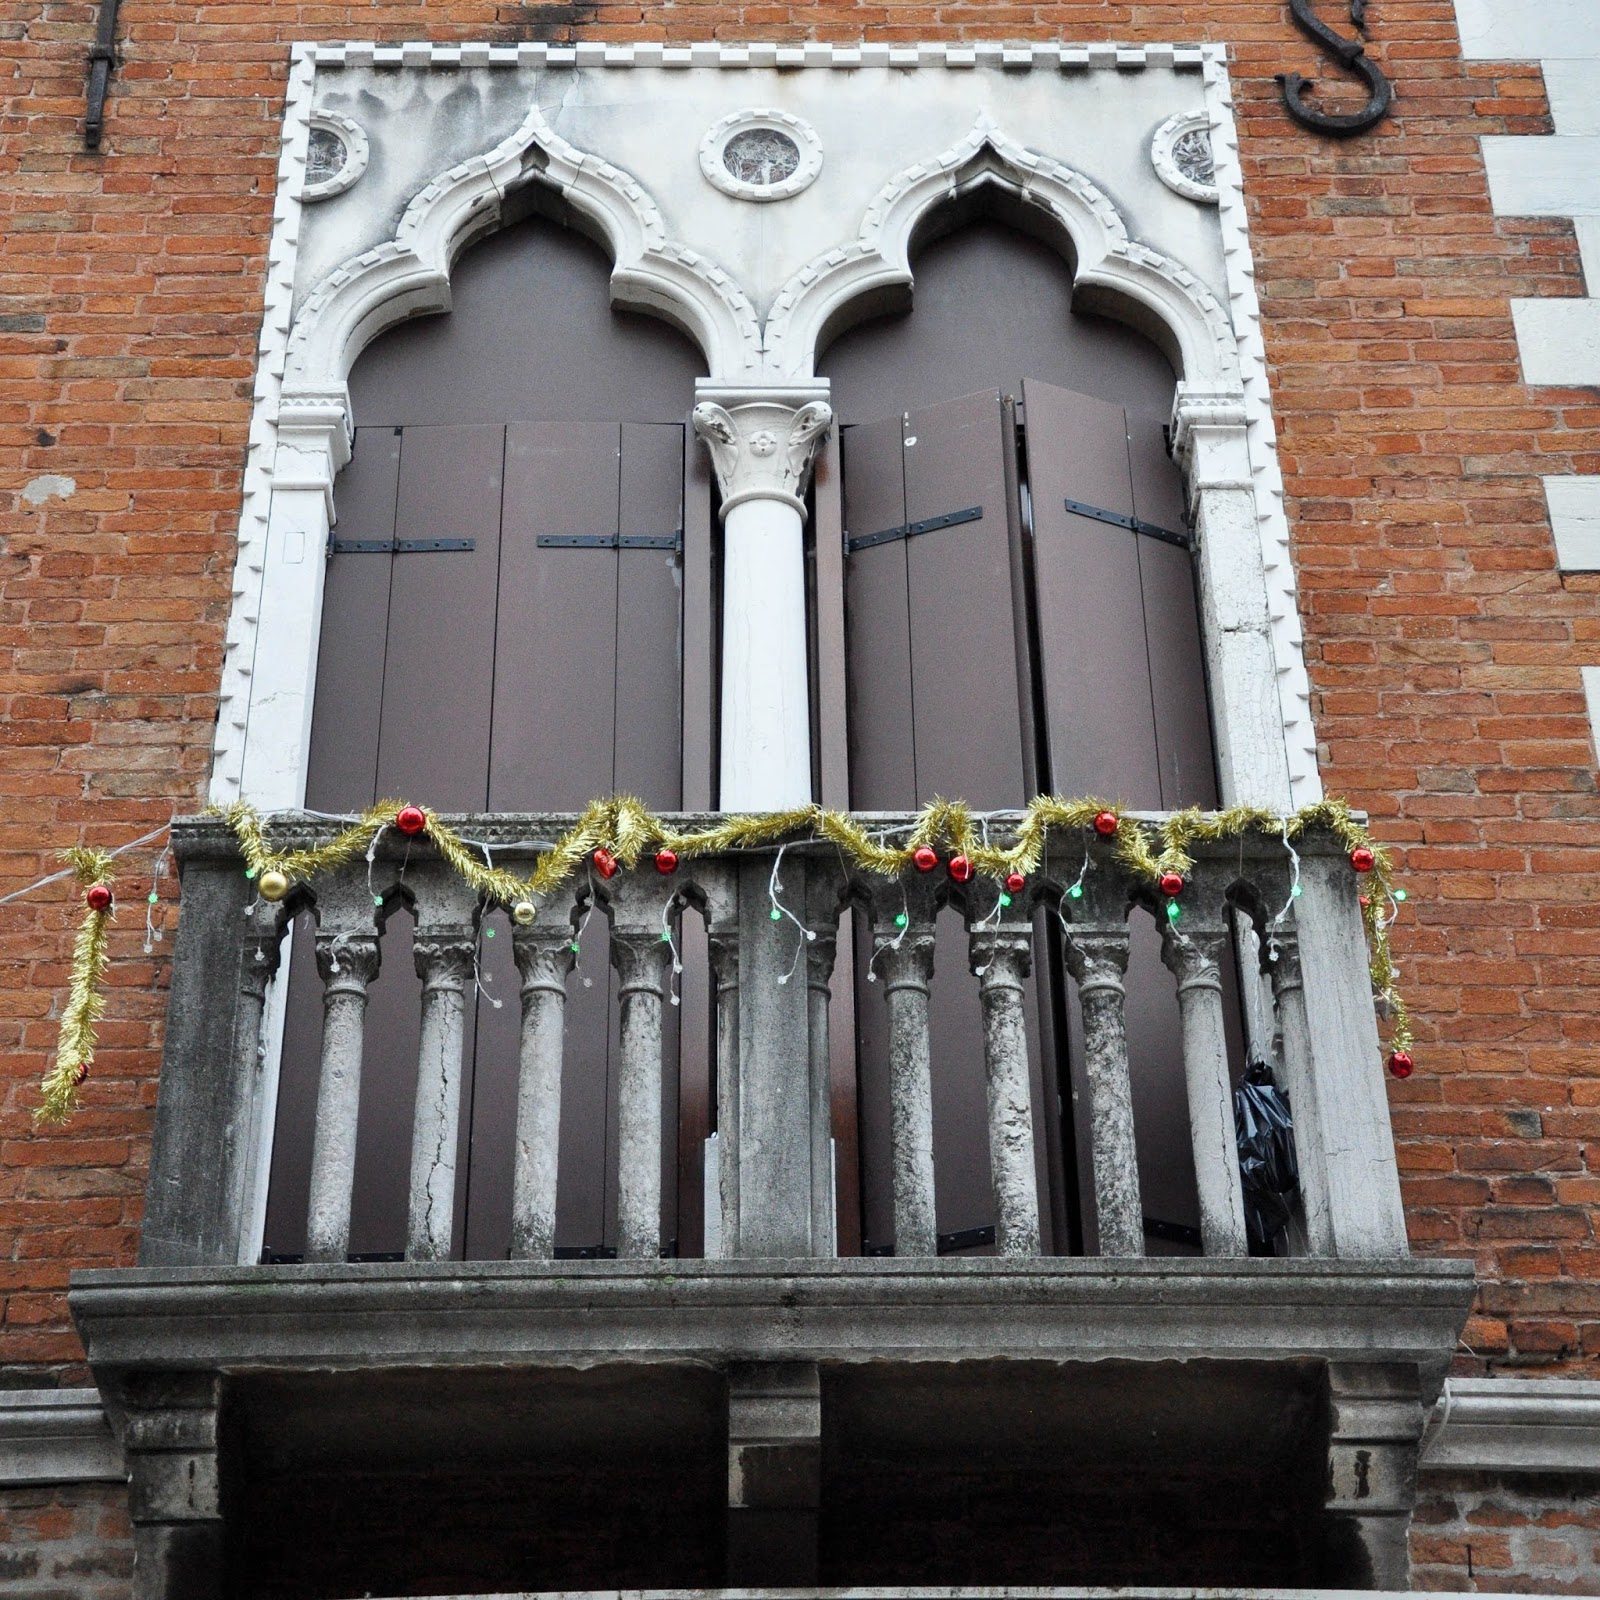 Trifora, Typical Venetian windows, Venice, Italy